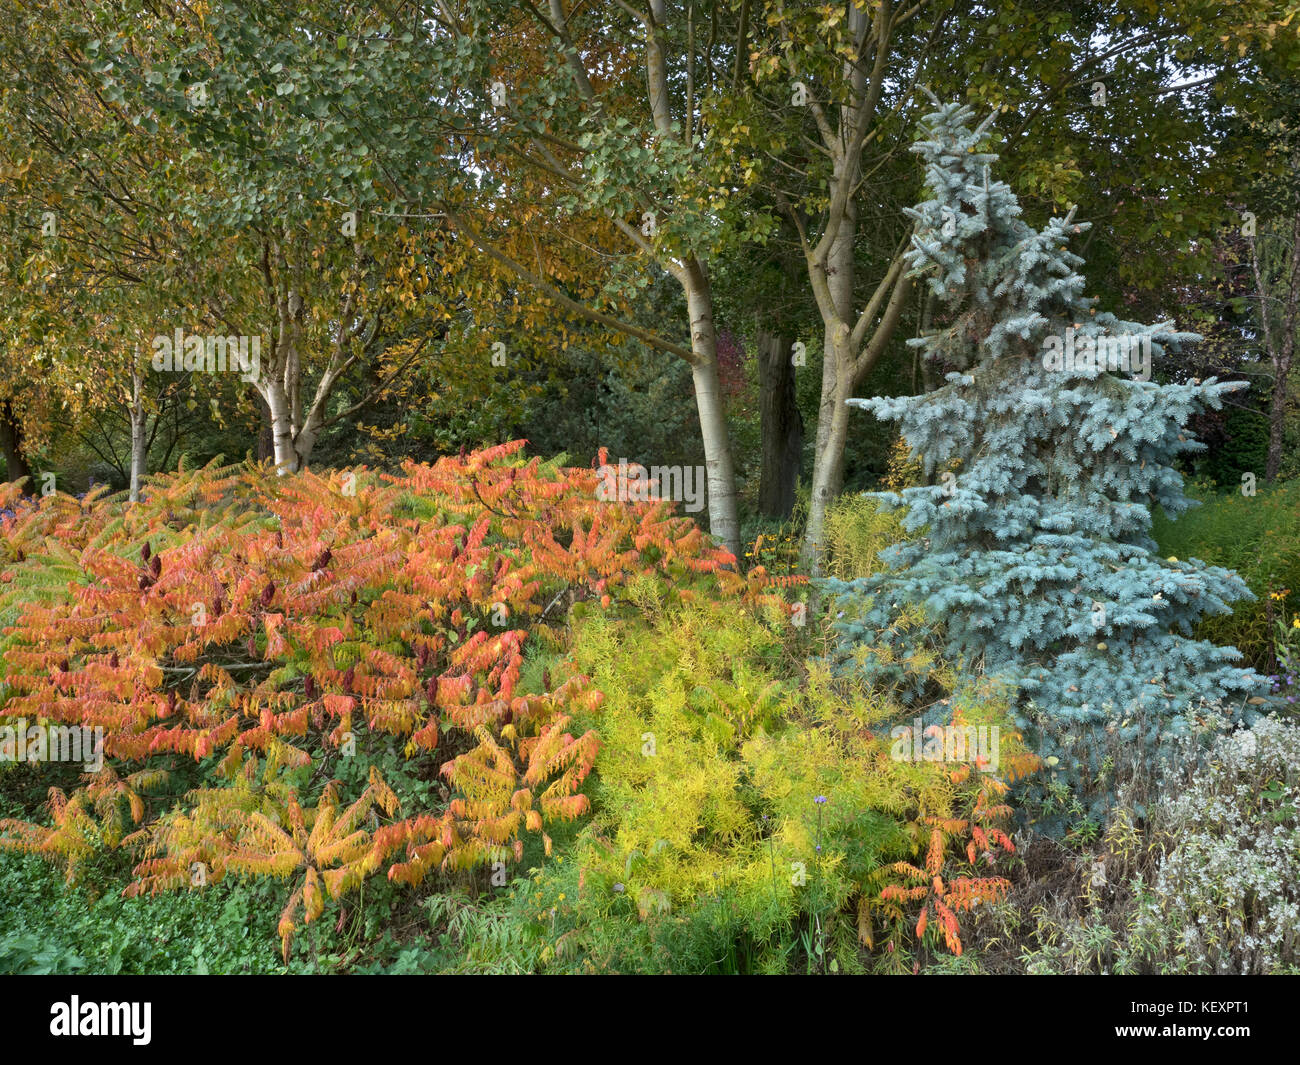 Silver birch and other Autumn foliage at Bressingham Gardens Norfolk October - Stock Image